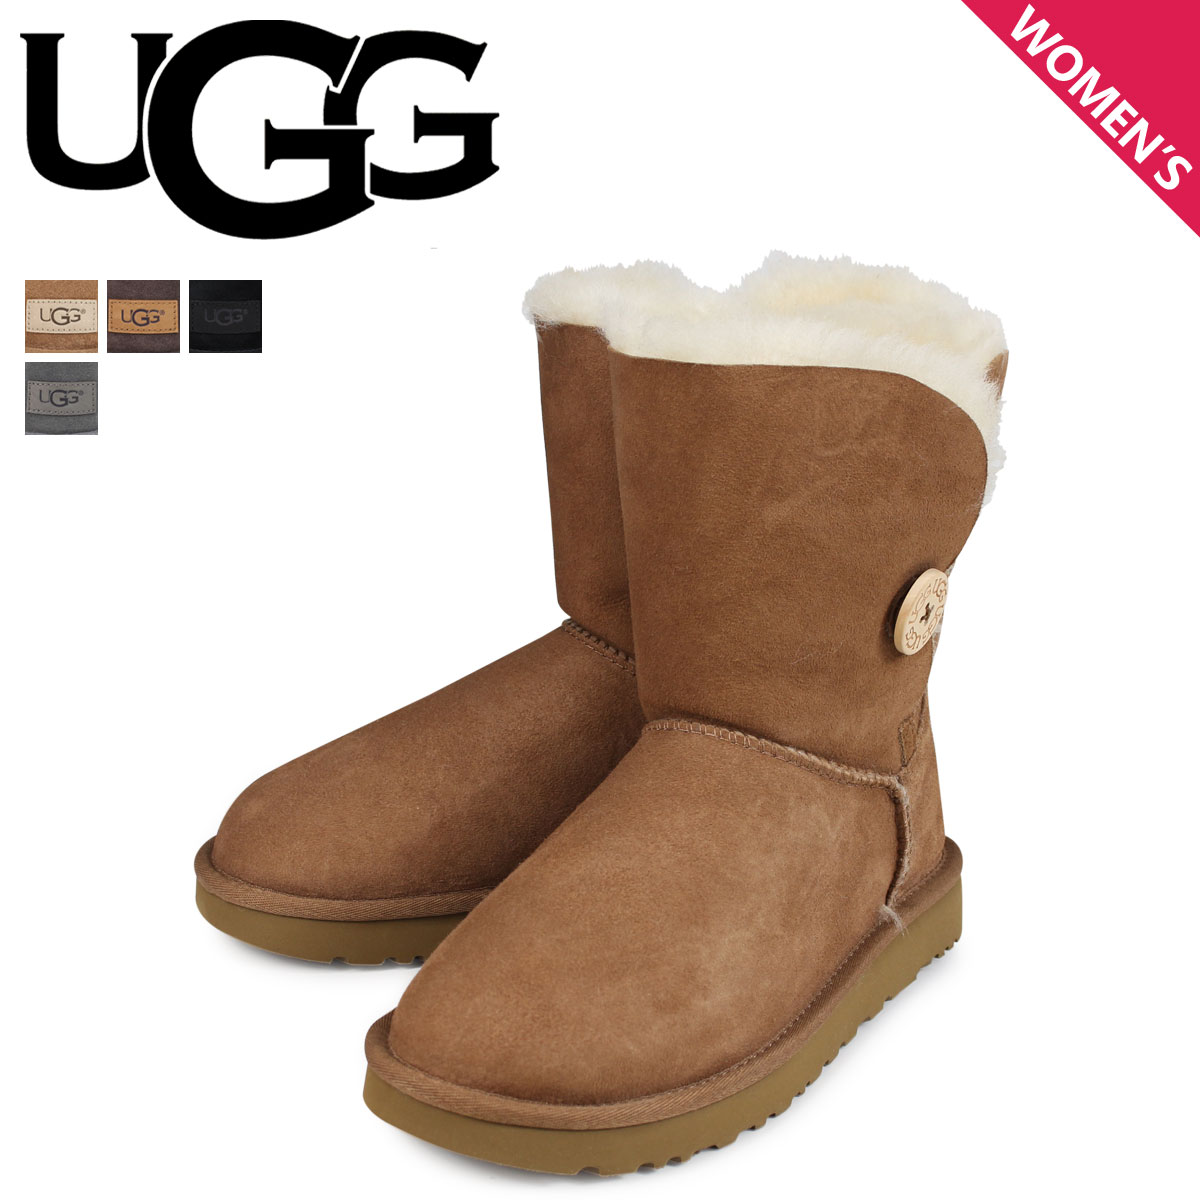 1caddc216f8 アグ UGG mouton boots Bailey button 2 Lady's WOMENS BAILEY BUTTON II 1016226